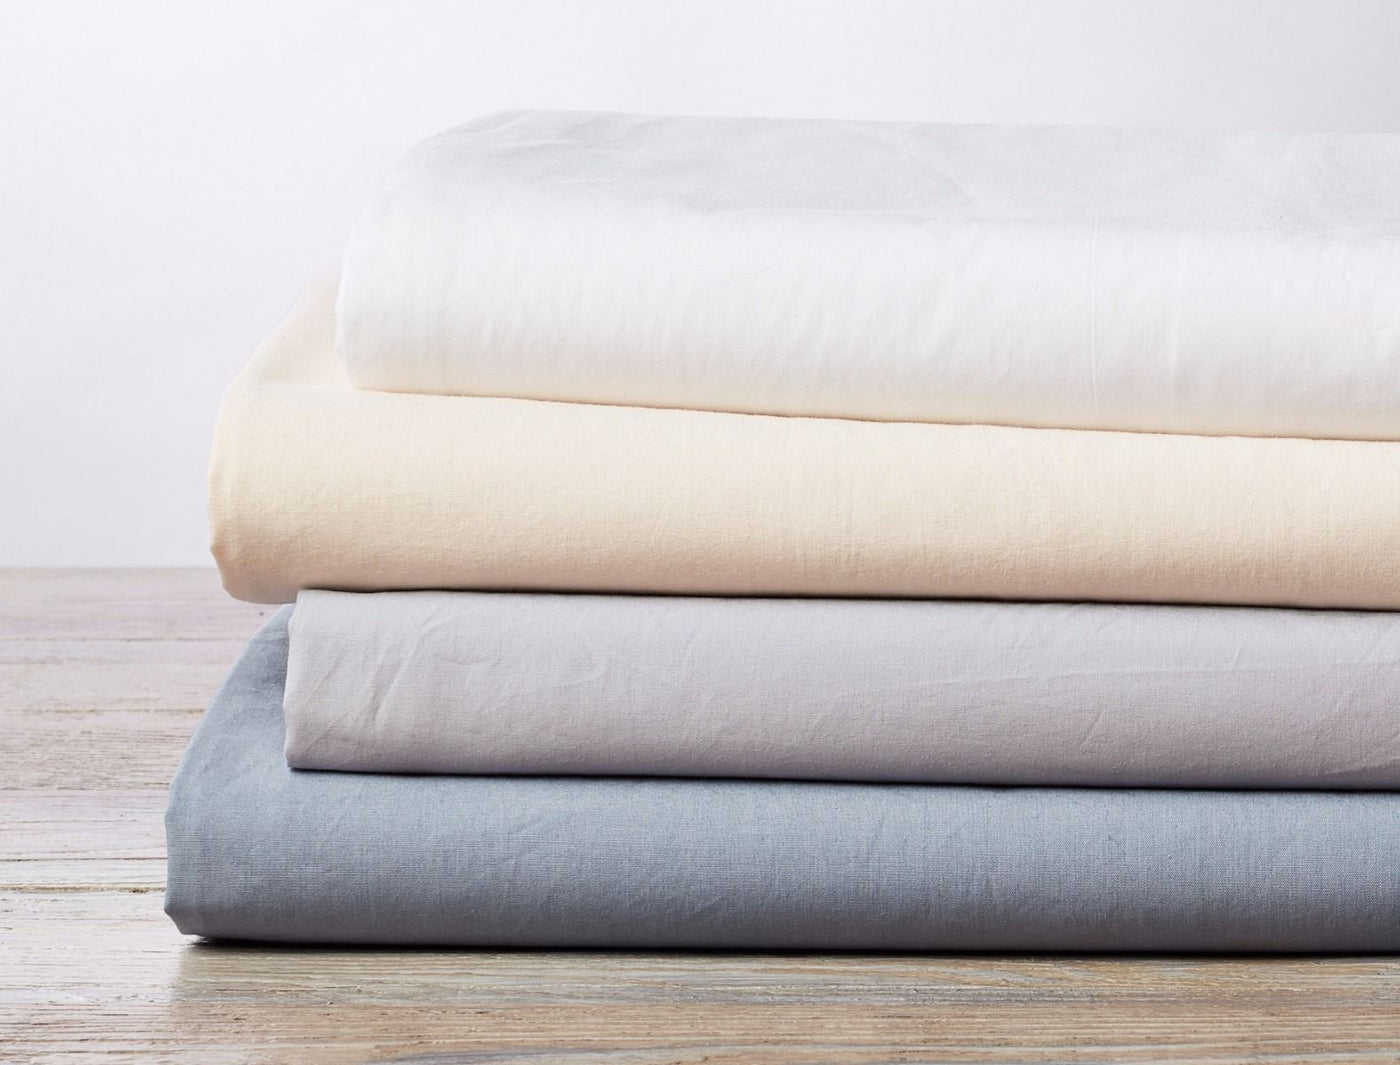 Organic Sheet Sets Collection - Luxurious Organic Sheet Sets available at Resthouse Sleep Solutions